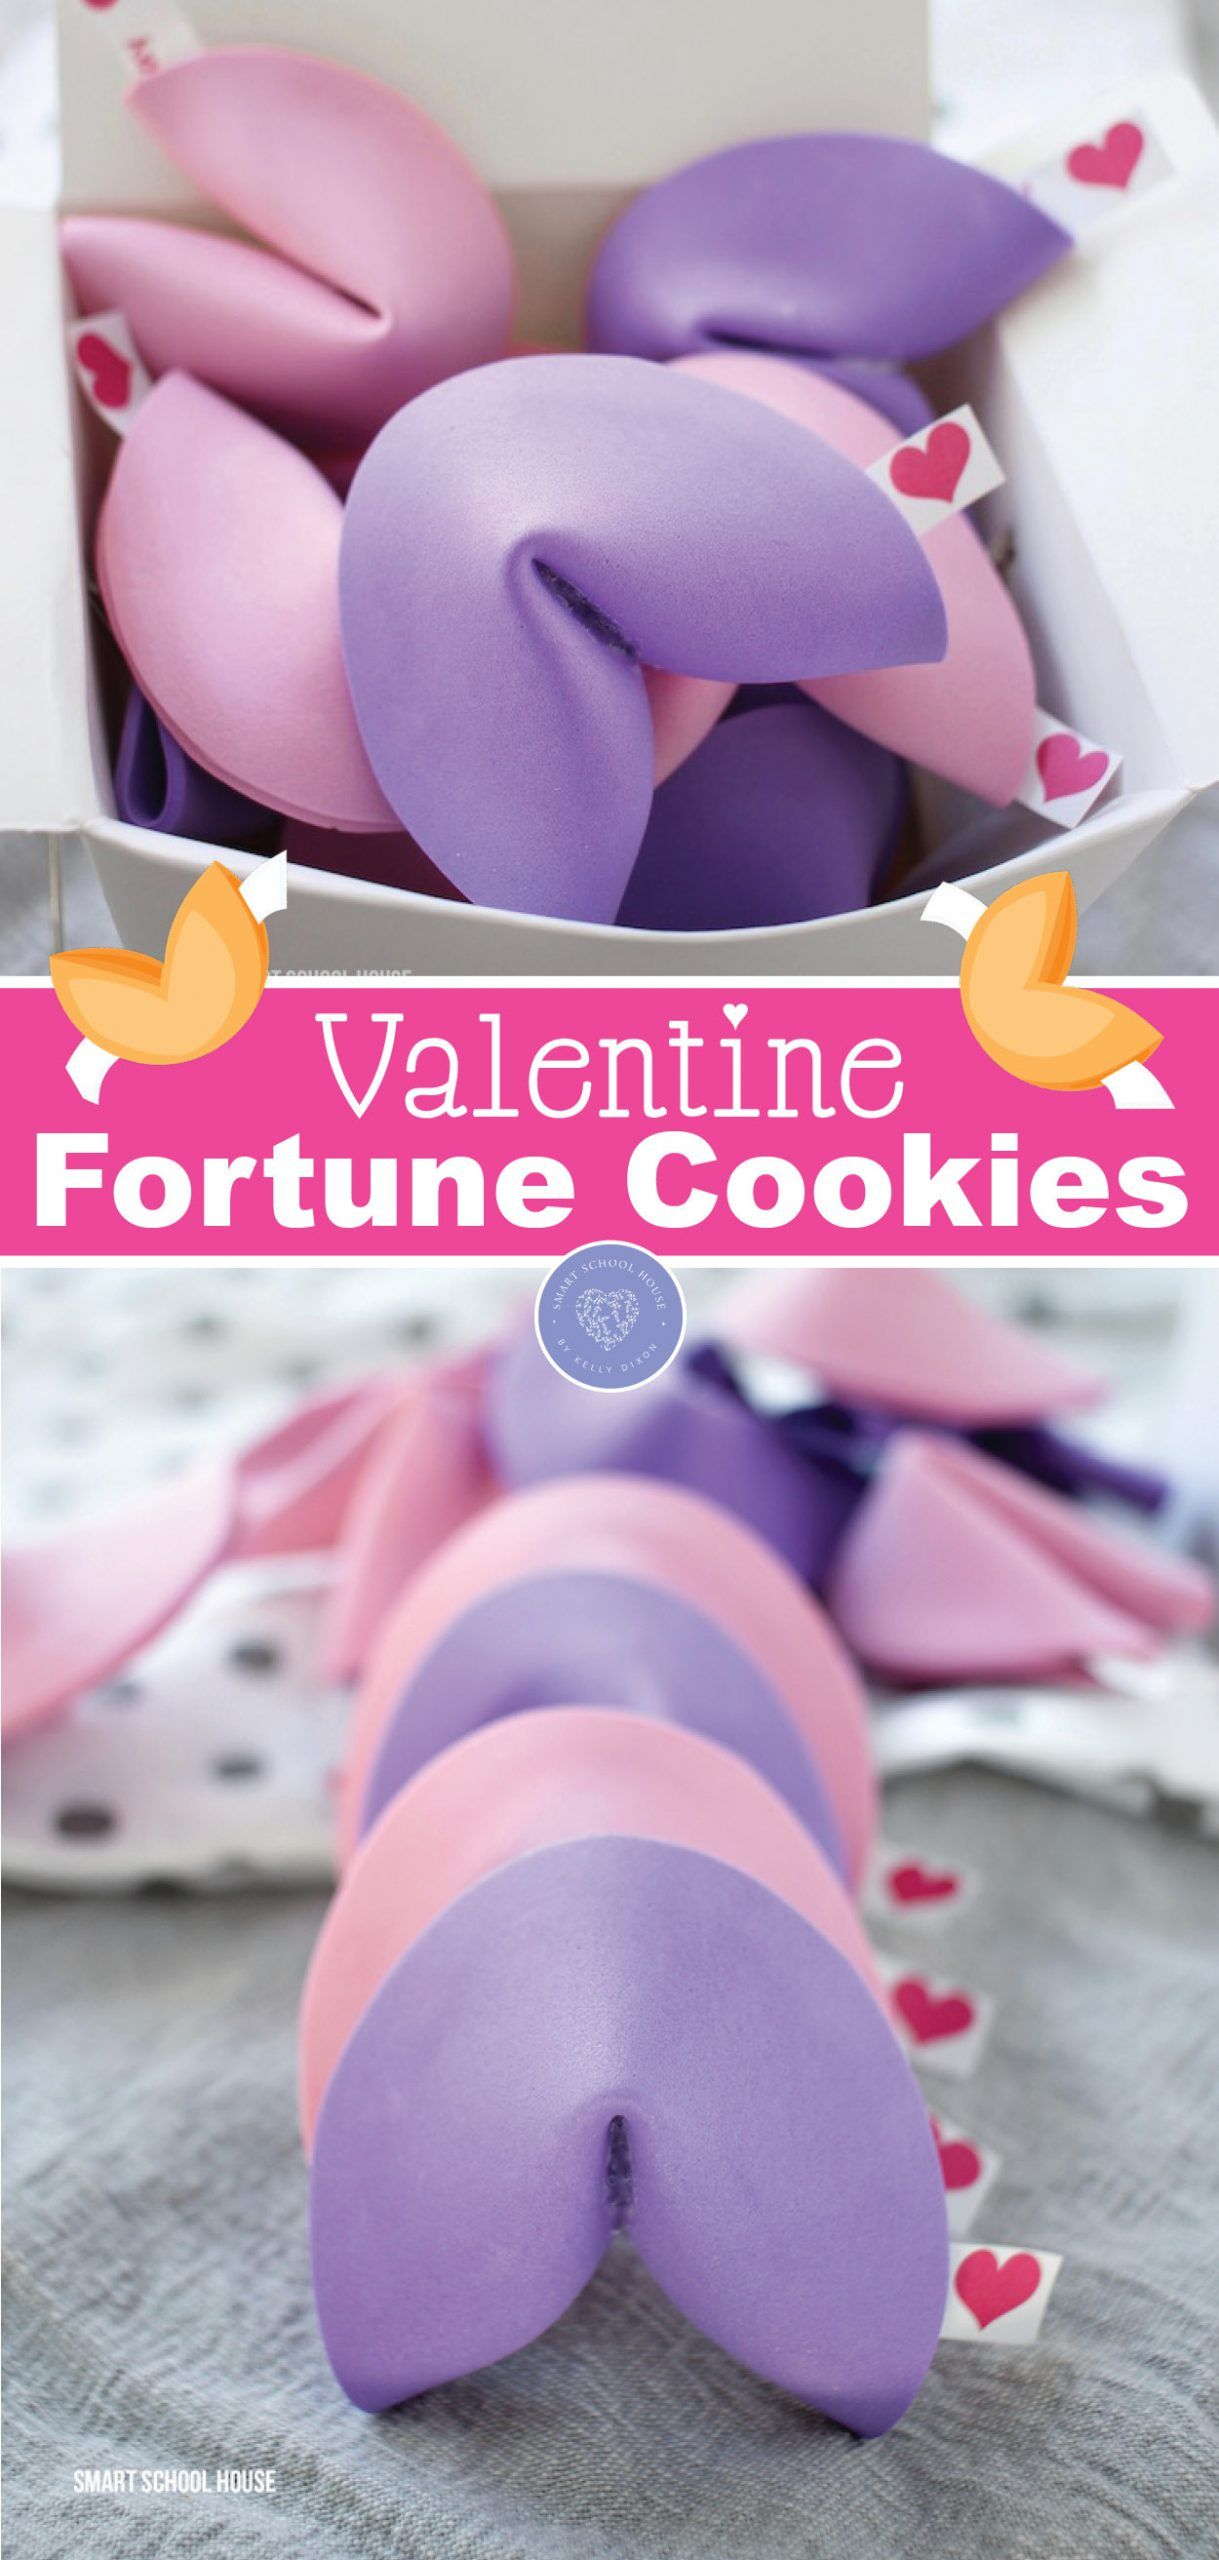 How to Make Valentine Fortune Cookies for Valentine's Day!